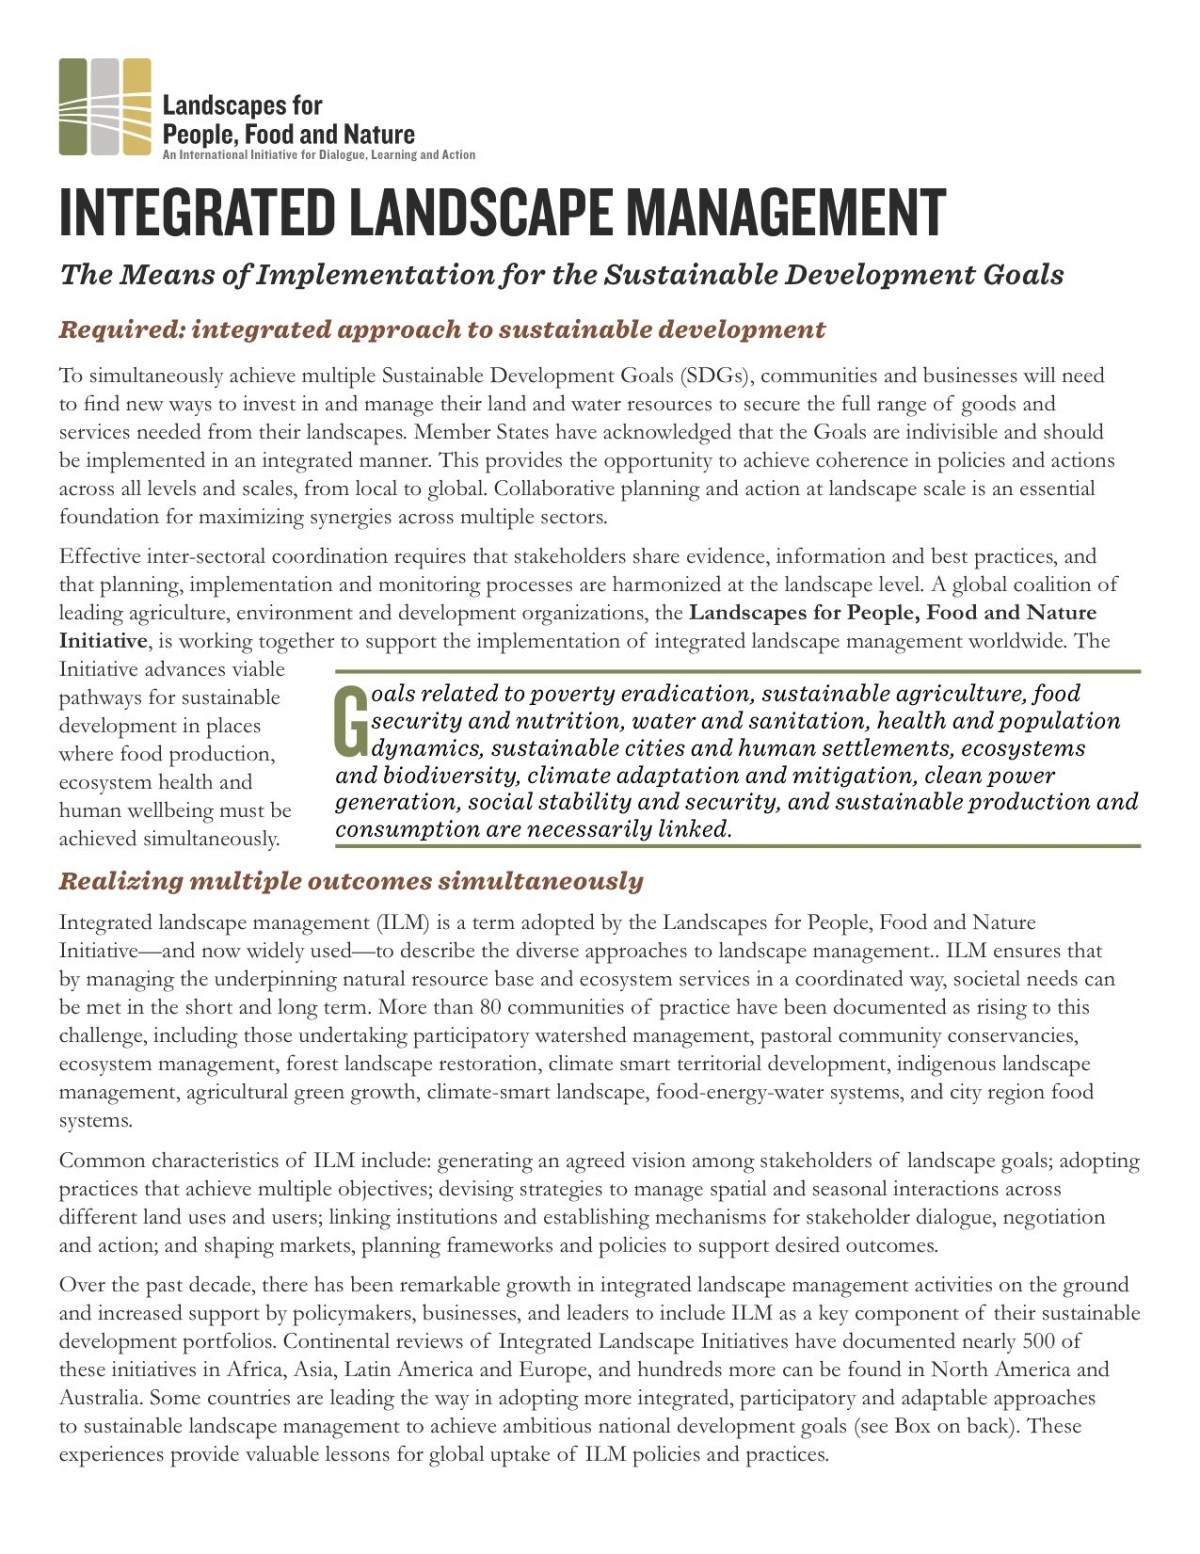 Integrated Landscape Management for the SDGs Statement